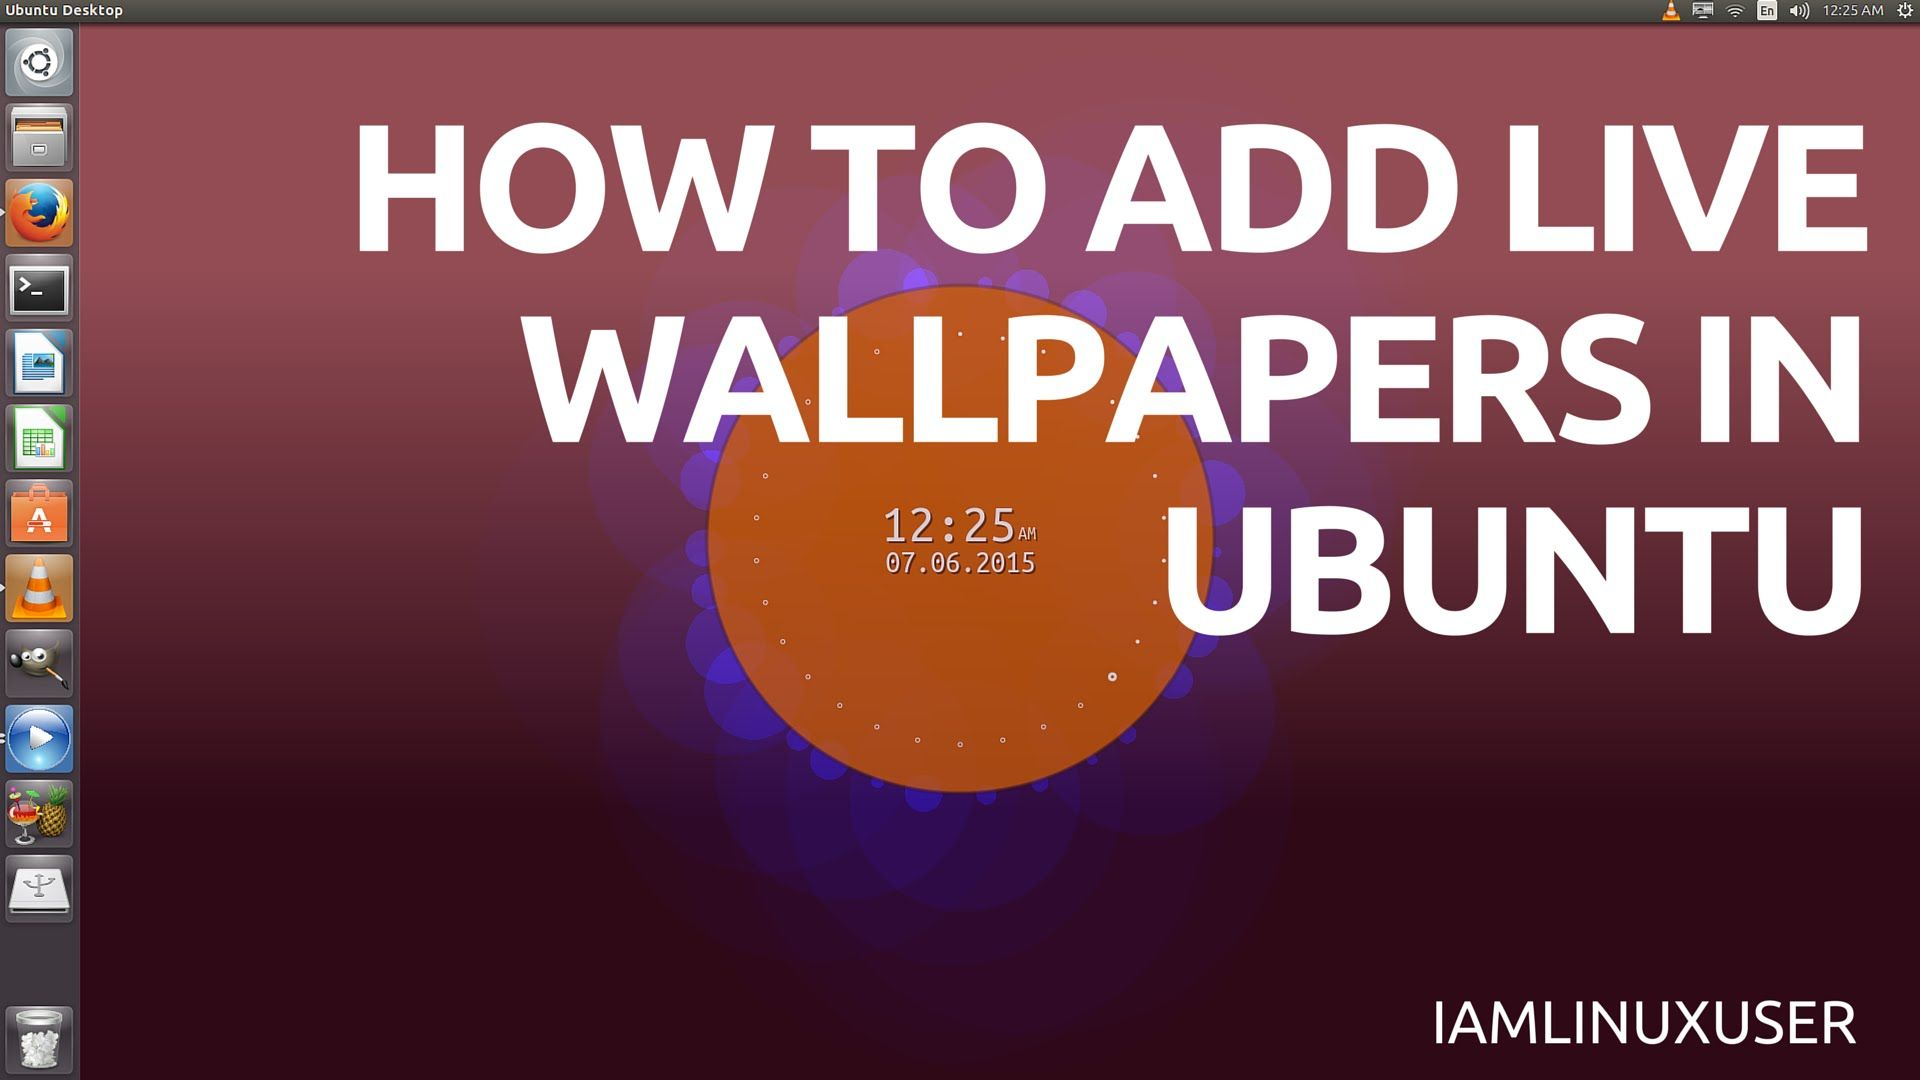 how to add live wallpapers in ubuntu i am linux user